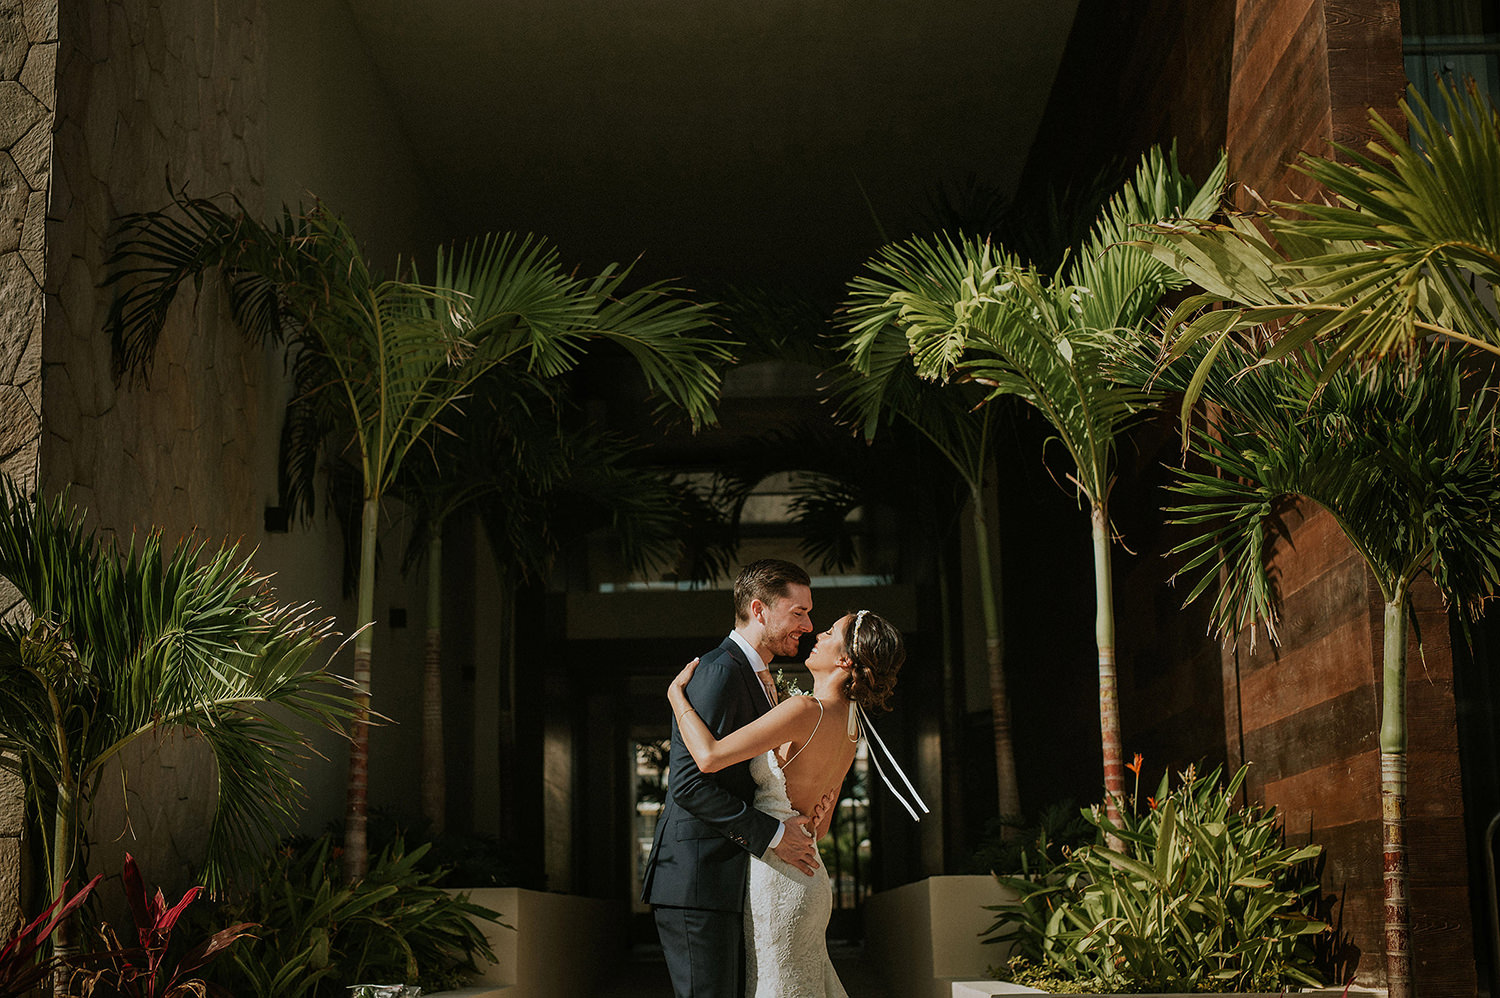 CherylReed_Wedding_Kape_Photography_WeddingPhotography_Mexico_Boda_Fotografia_Royalton_Hideway_Cancun_RivieraMaya_PlayadelCarmen_Beach_145FB_BLOG.jpg